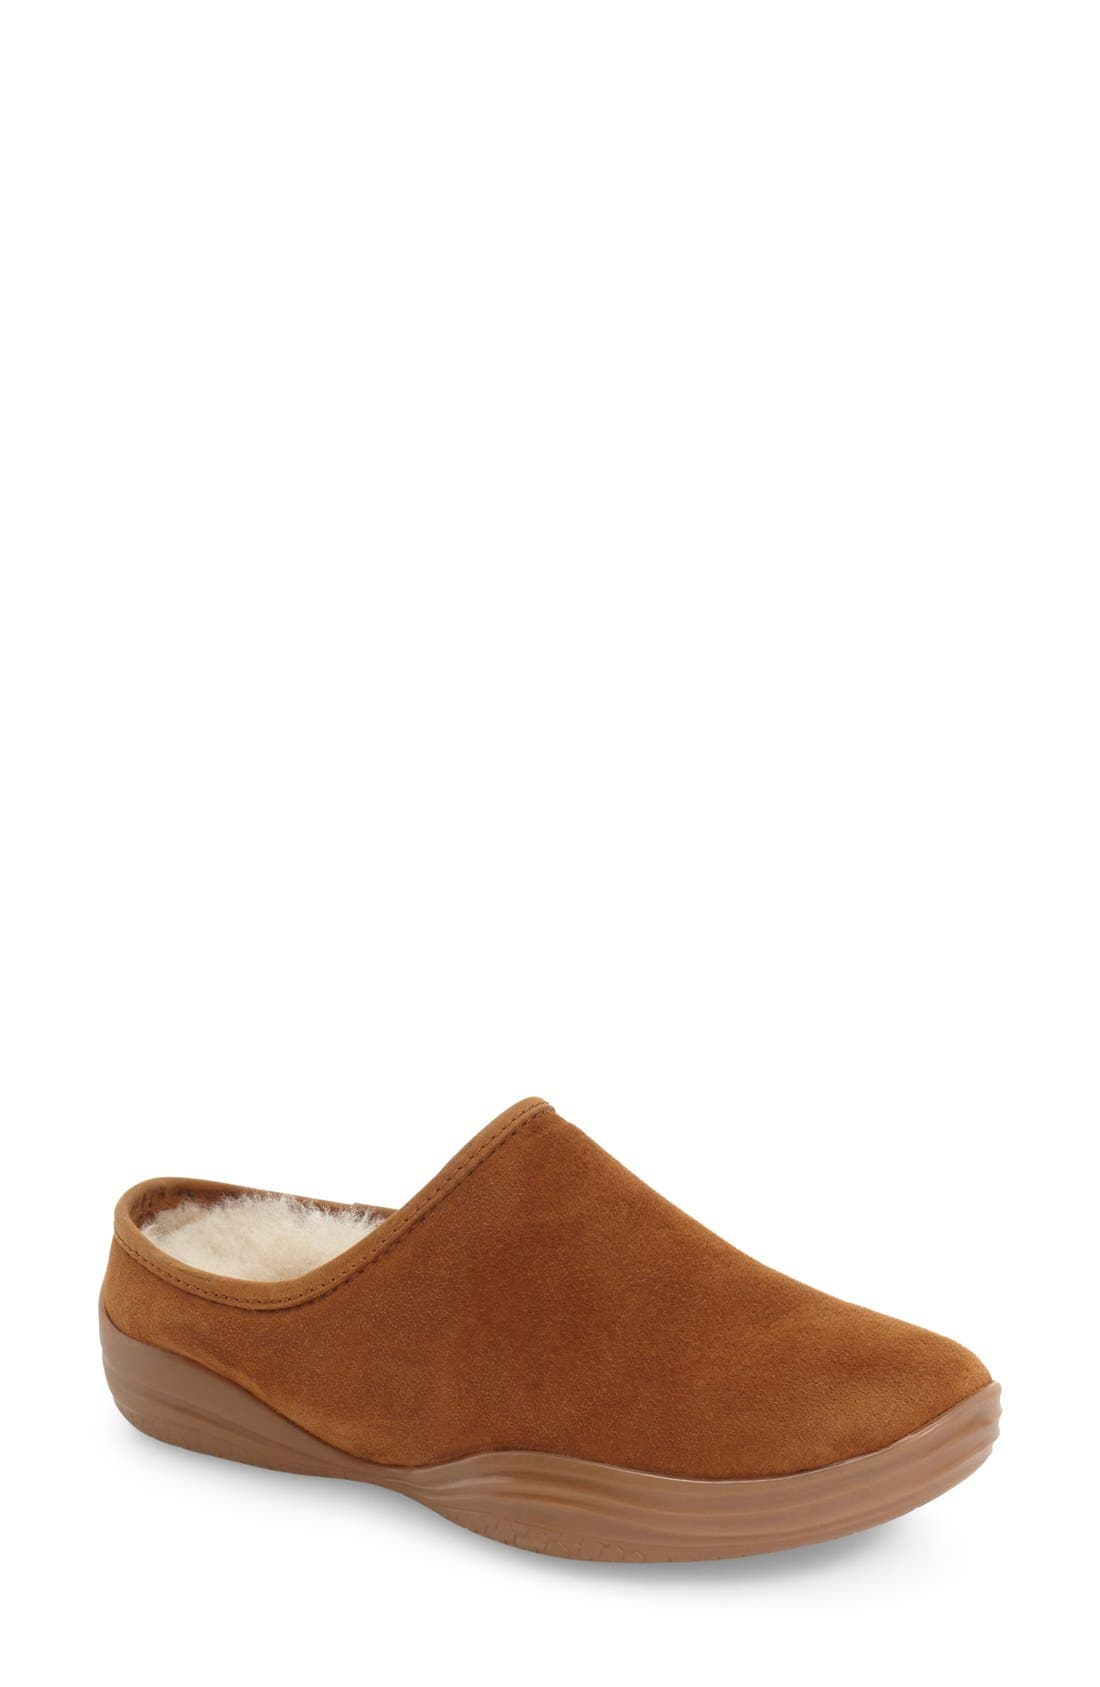 'Stamford' Genuine Shearling Clog Slipper,                             Main thumbnail 1, color,                             BEIGE/ BROWN LEATHER